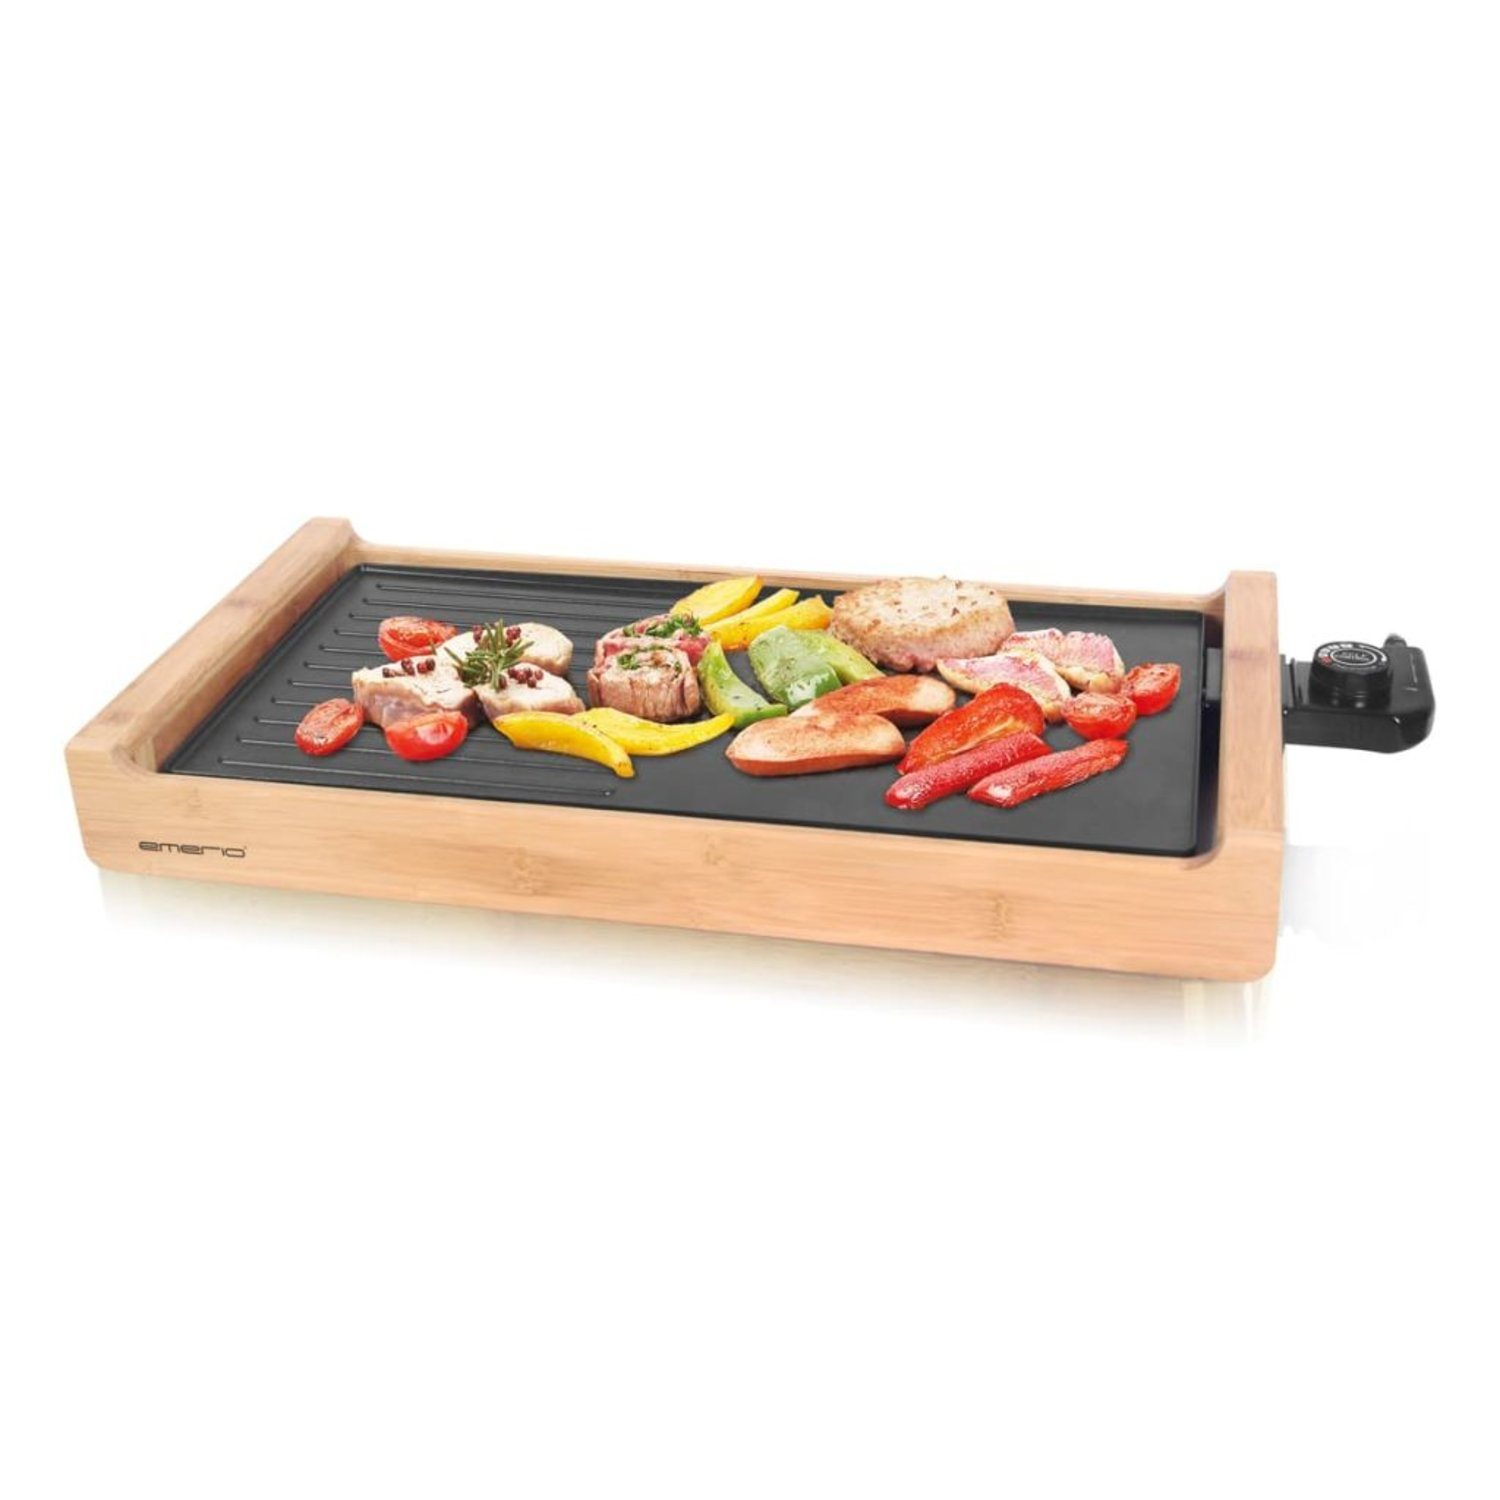 Emerio Teppanyaki Bordsgrill TG-110281.1